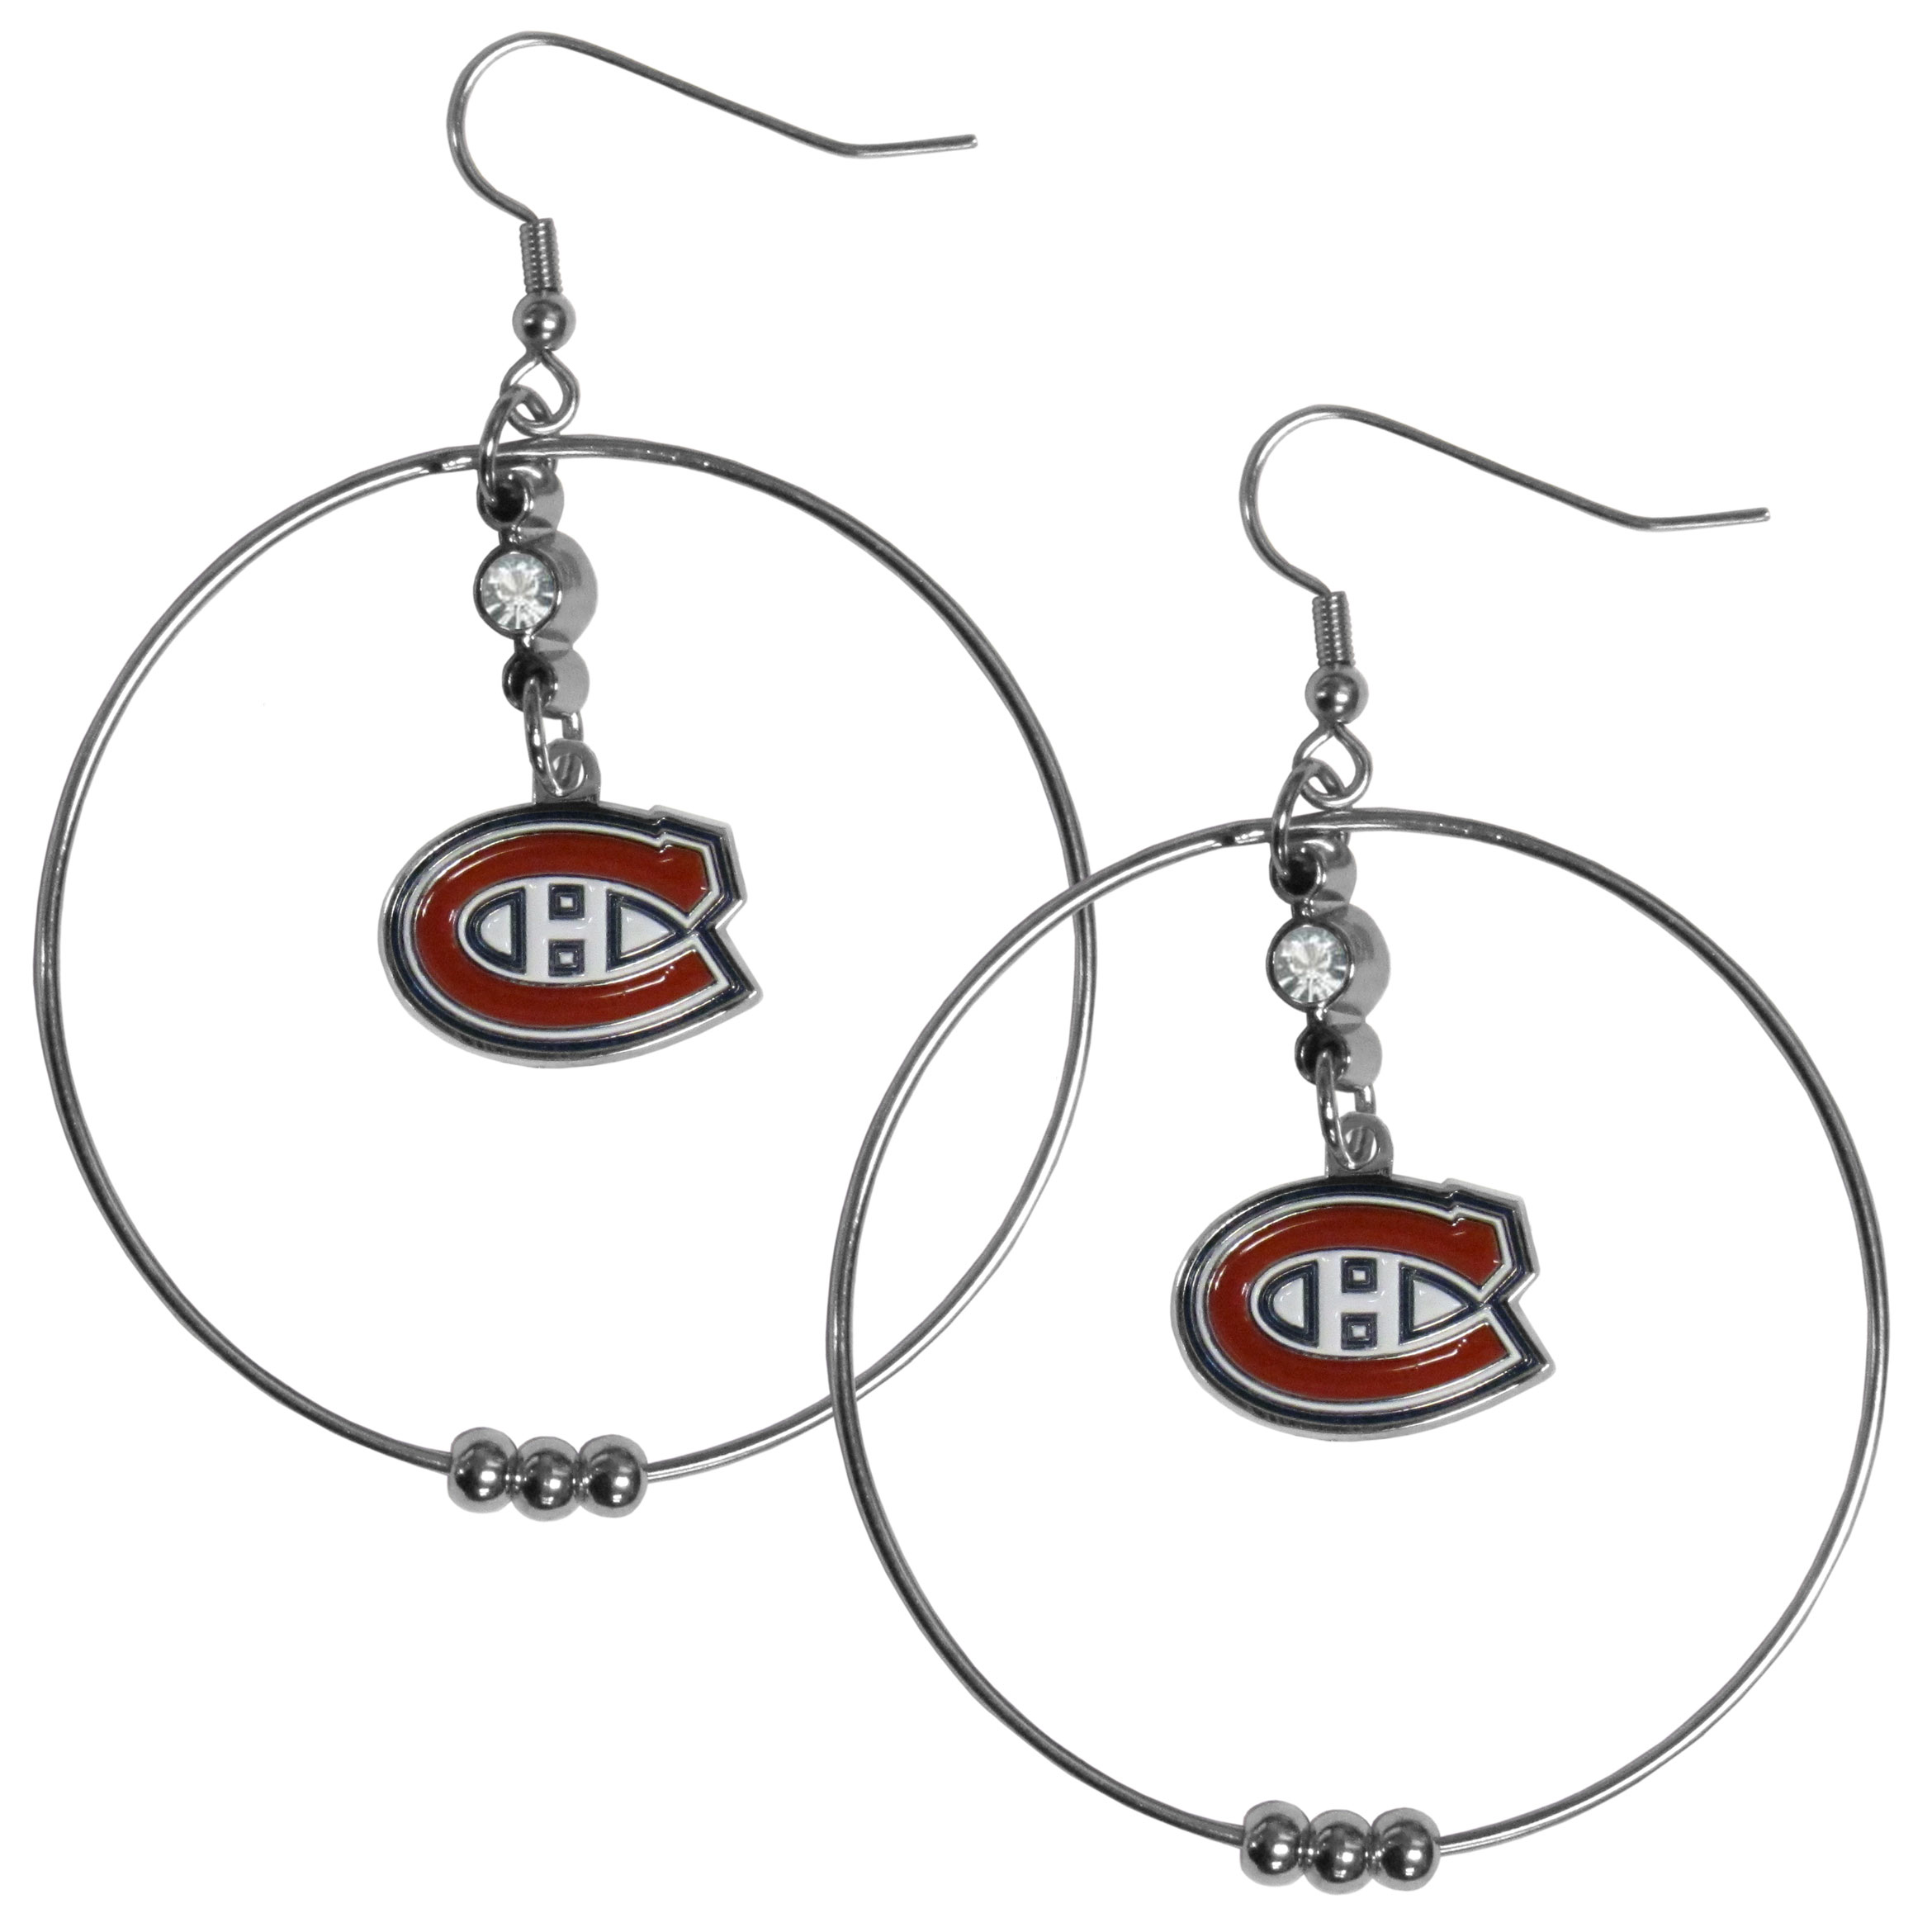 Montreal Canadiens® 2 Inch Hoop Earrings - Our large hoop earrings have a fully cast and enameled Montreal Canadiens® charm with enameled detail and a high polish nickel free chrome finish and rhinestone access. Hypoallergenic fishhook posts.